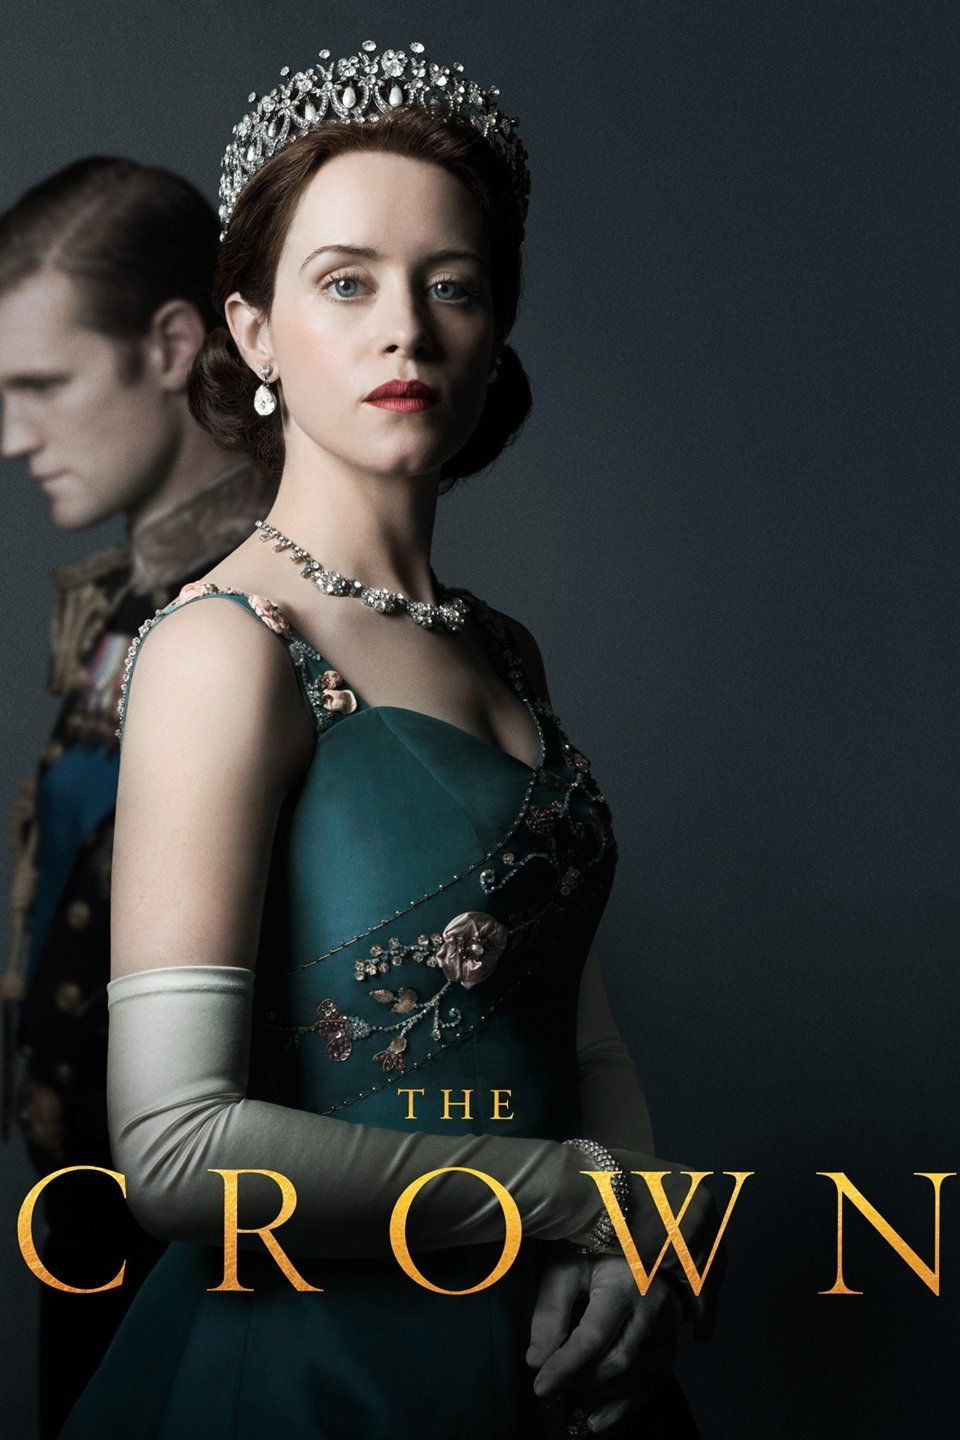 The Crown Season 2 Complete 720p HEVC WEB-DL Download